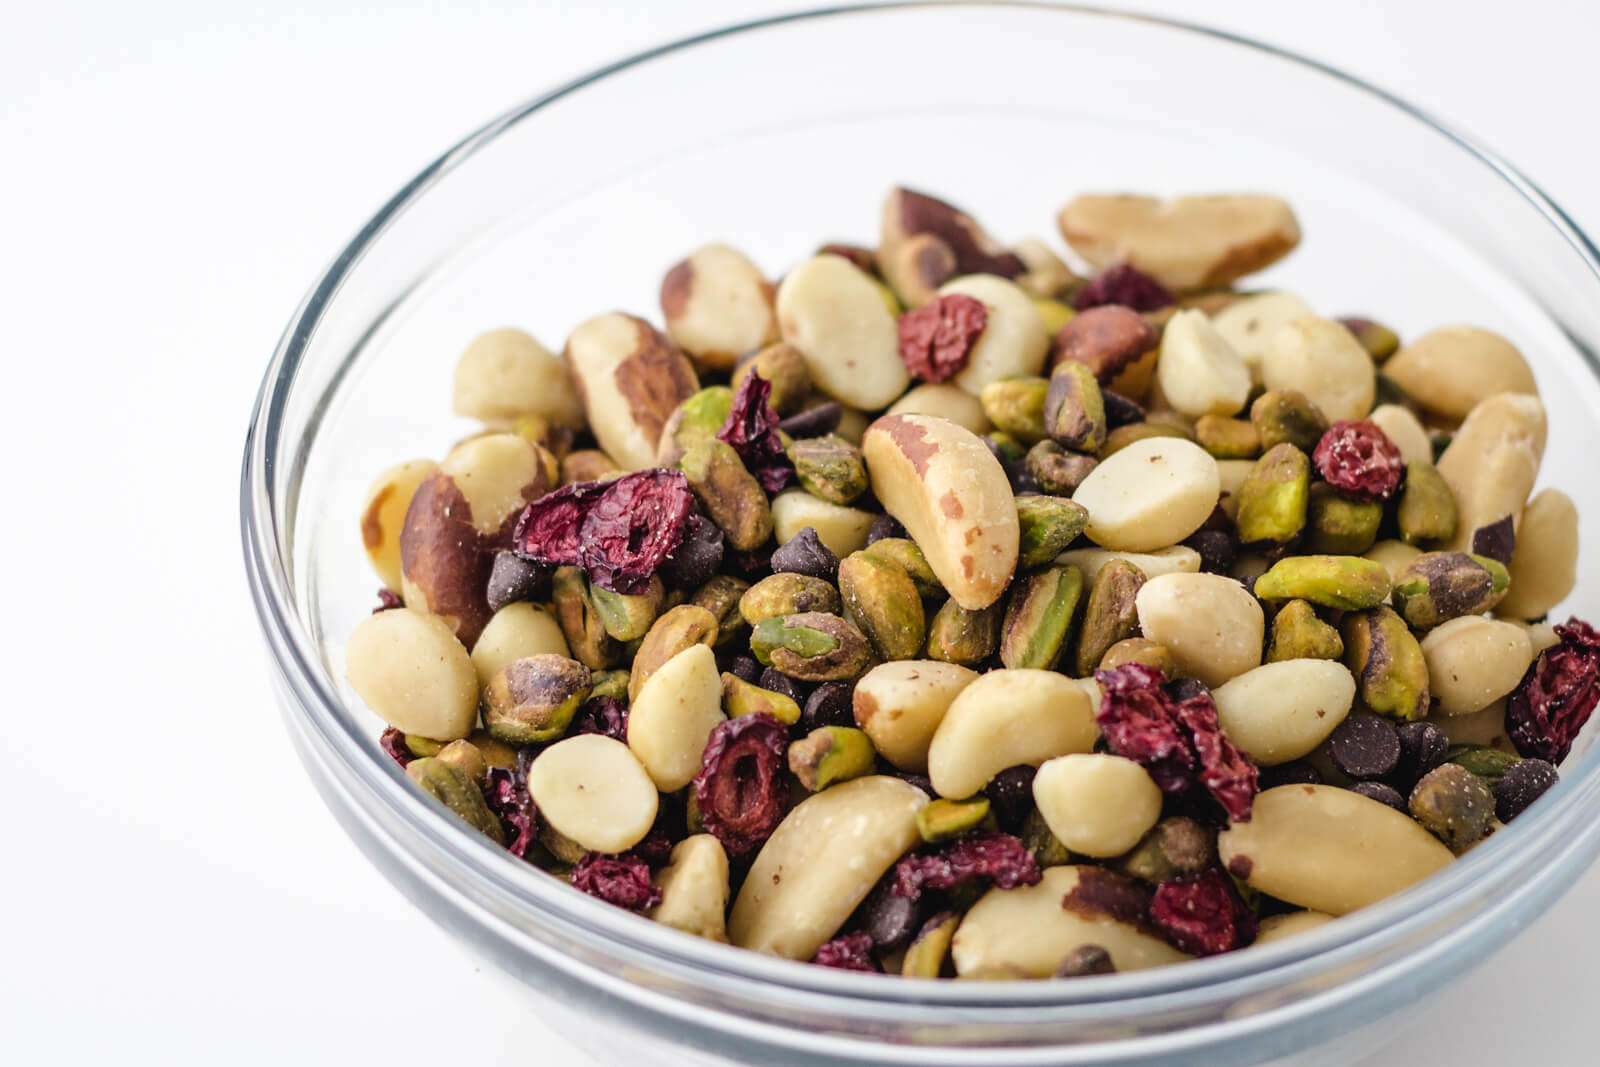 Bowl of low carb keto trail mix with brazil nuts, macadamias, pistachios, lily's chocolate chips, and honestly cranberry unsweetened dried cranberries